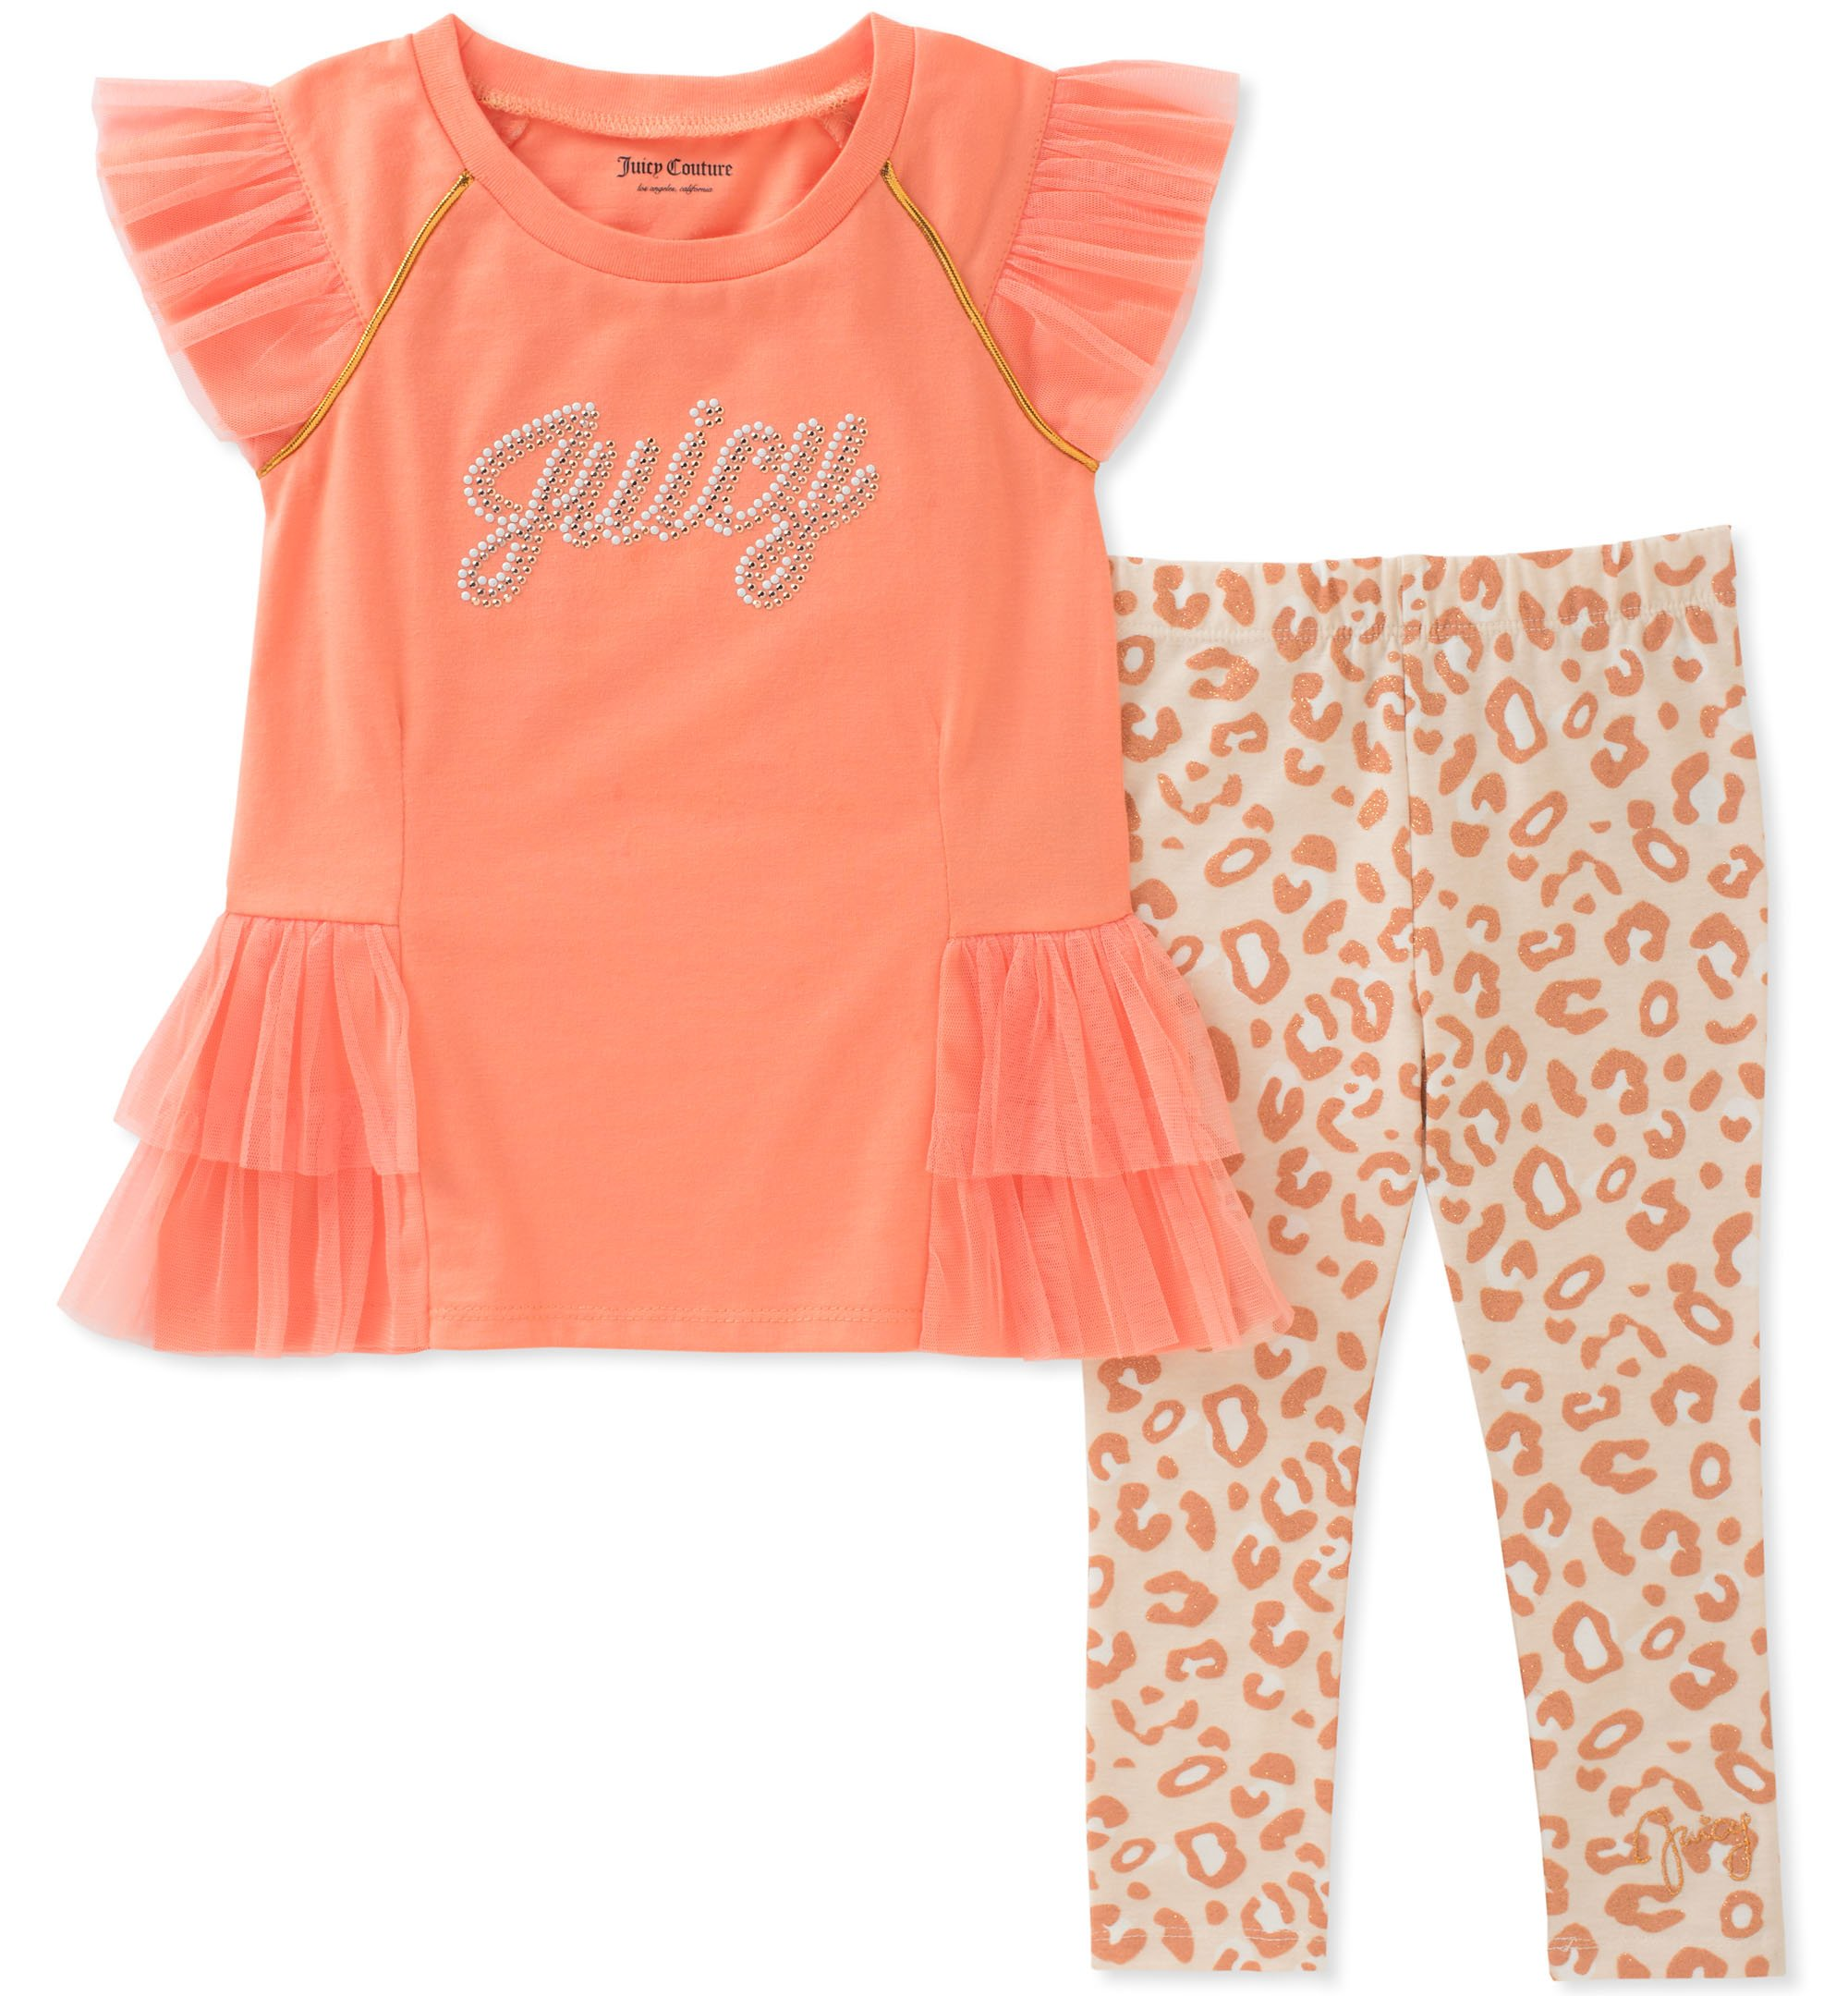 Juicy Couture Baby Girls 2 Pieces Tunic Set, Coral/Print 12M